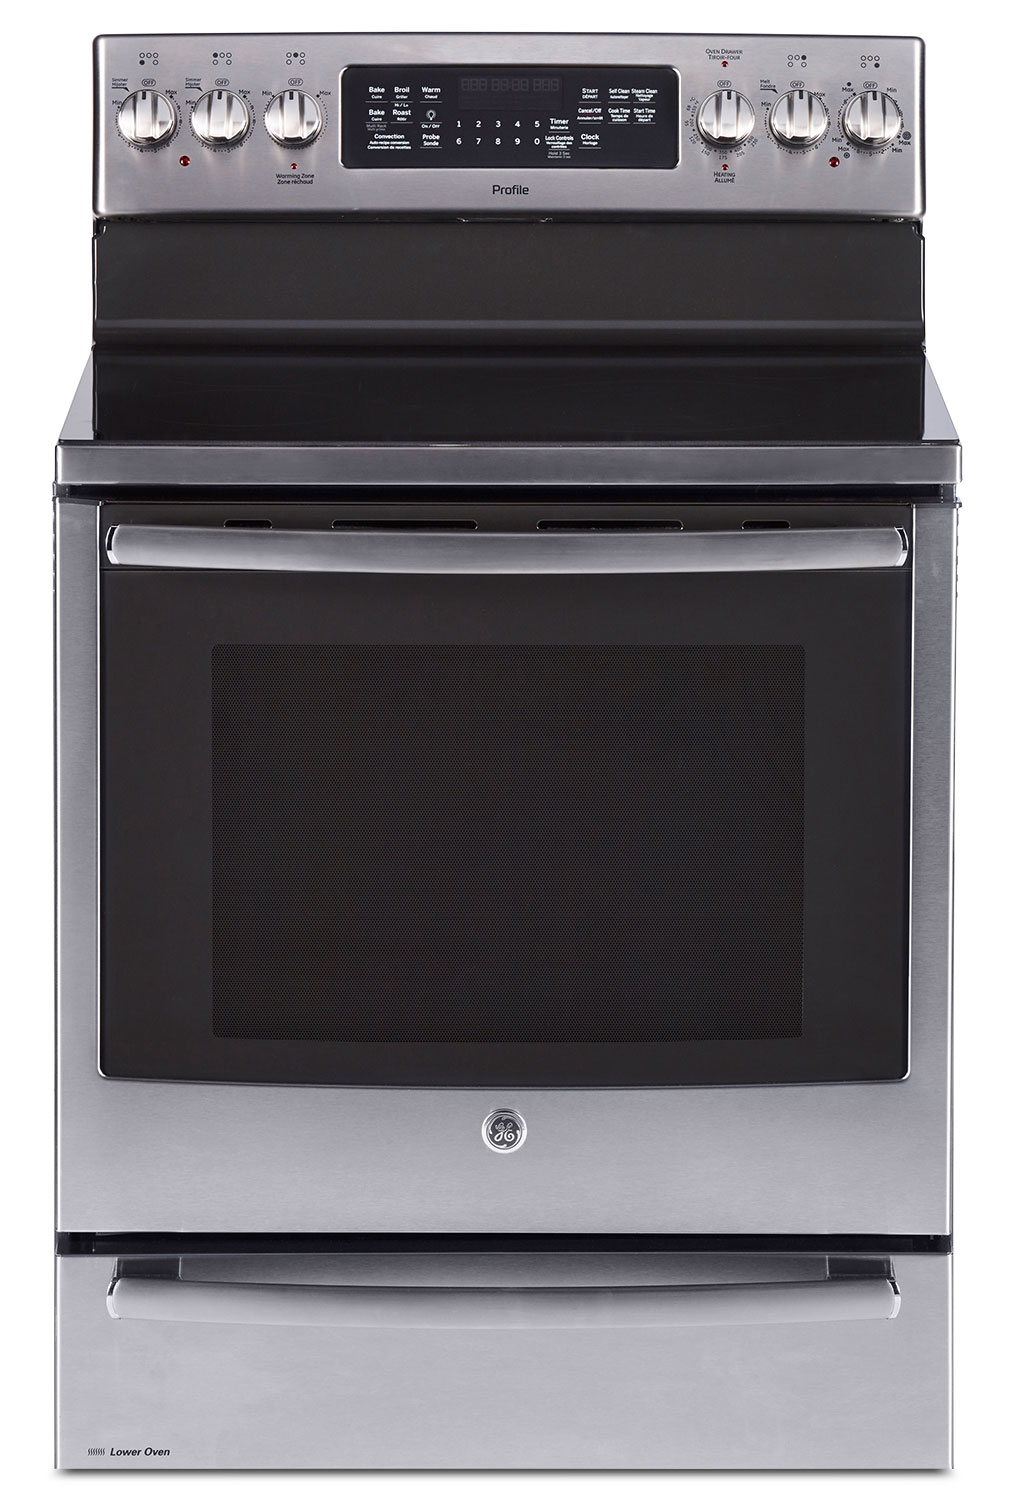 GE 6.2 Cu. Ft. Freestanding Electric Range with Baking Drawer – PCB985SKSS